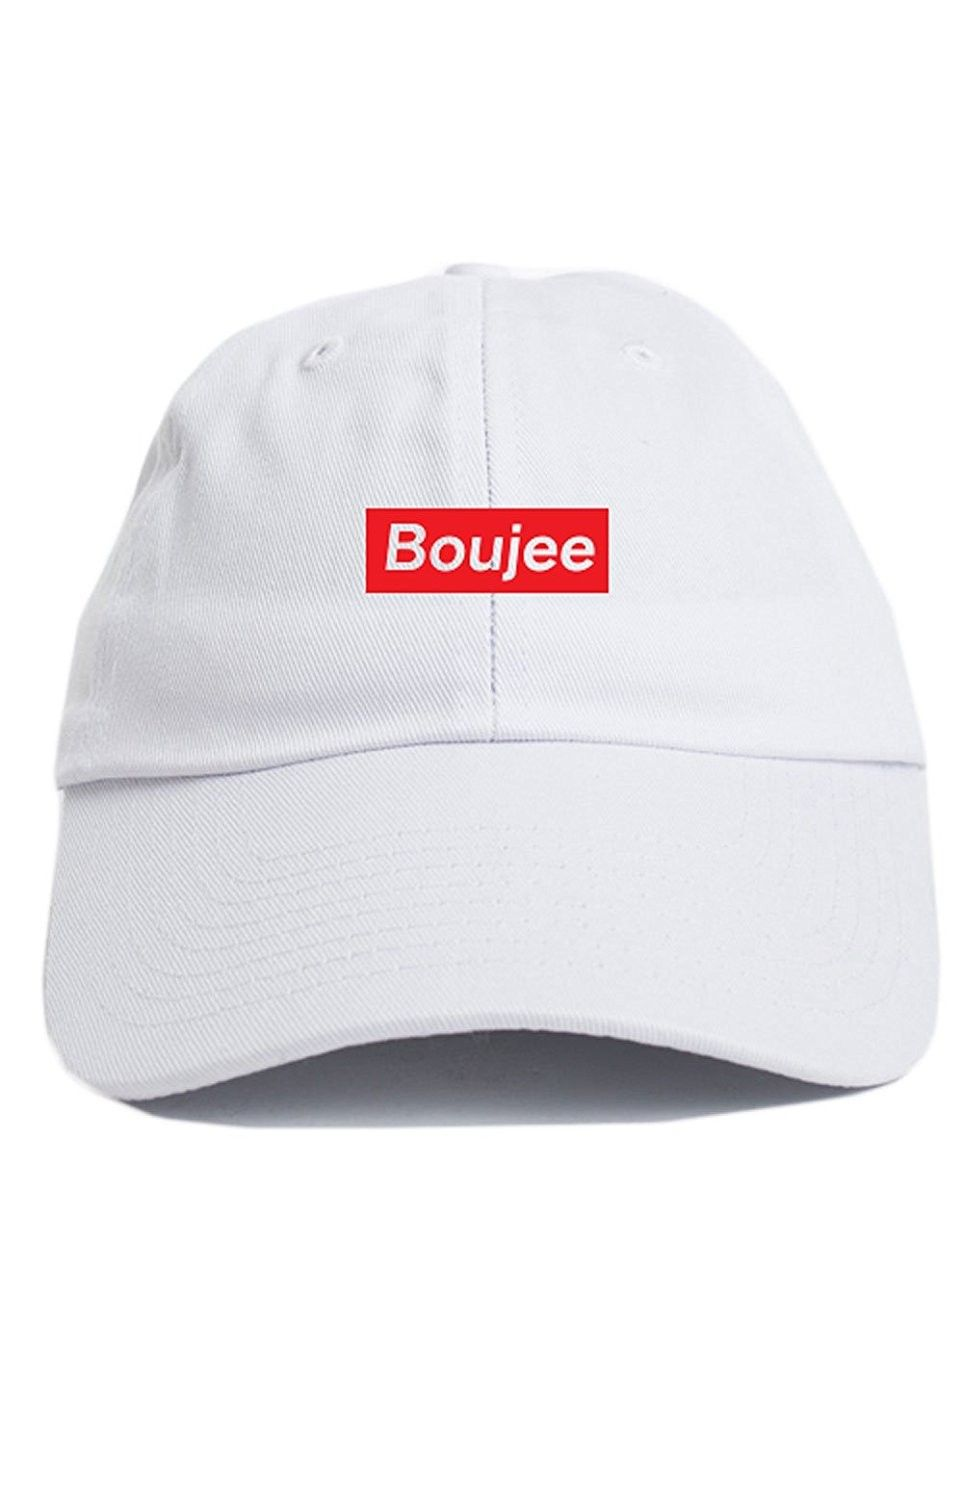 aaba106fb Boujee Supreme Dad Hat Baseball Cap Unstructured New - White ...